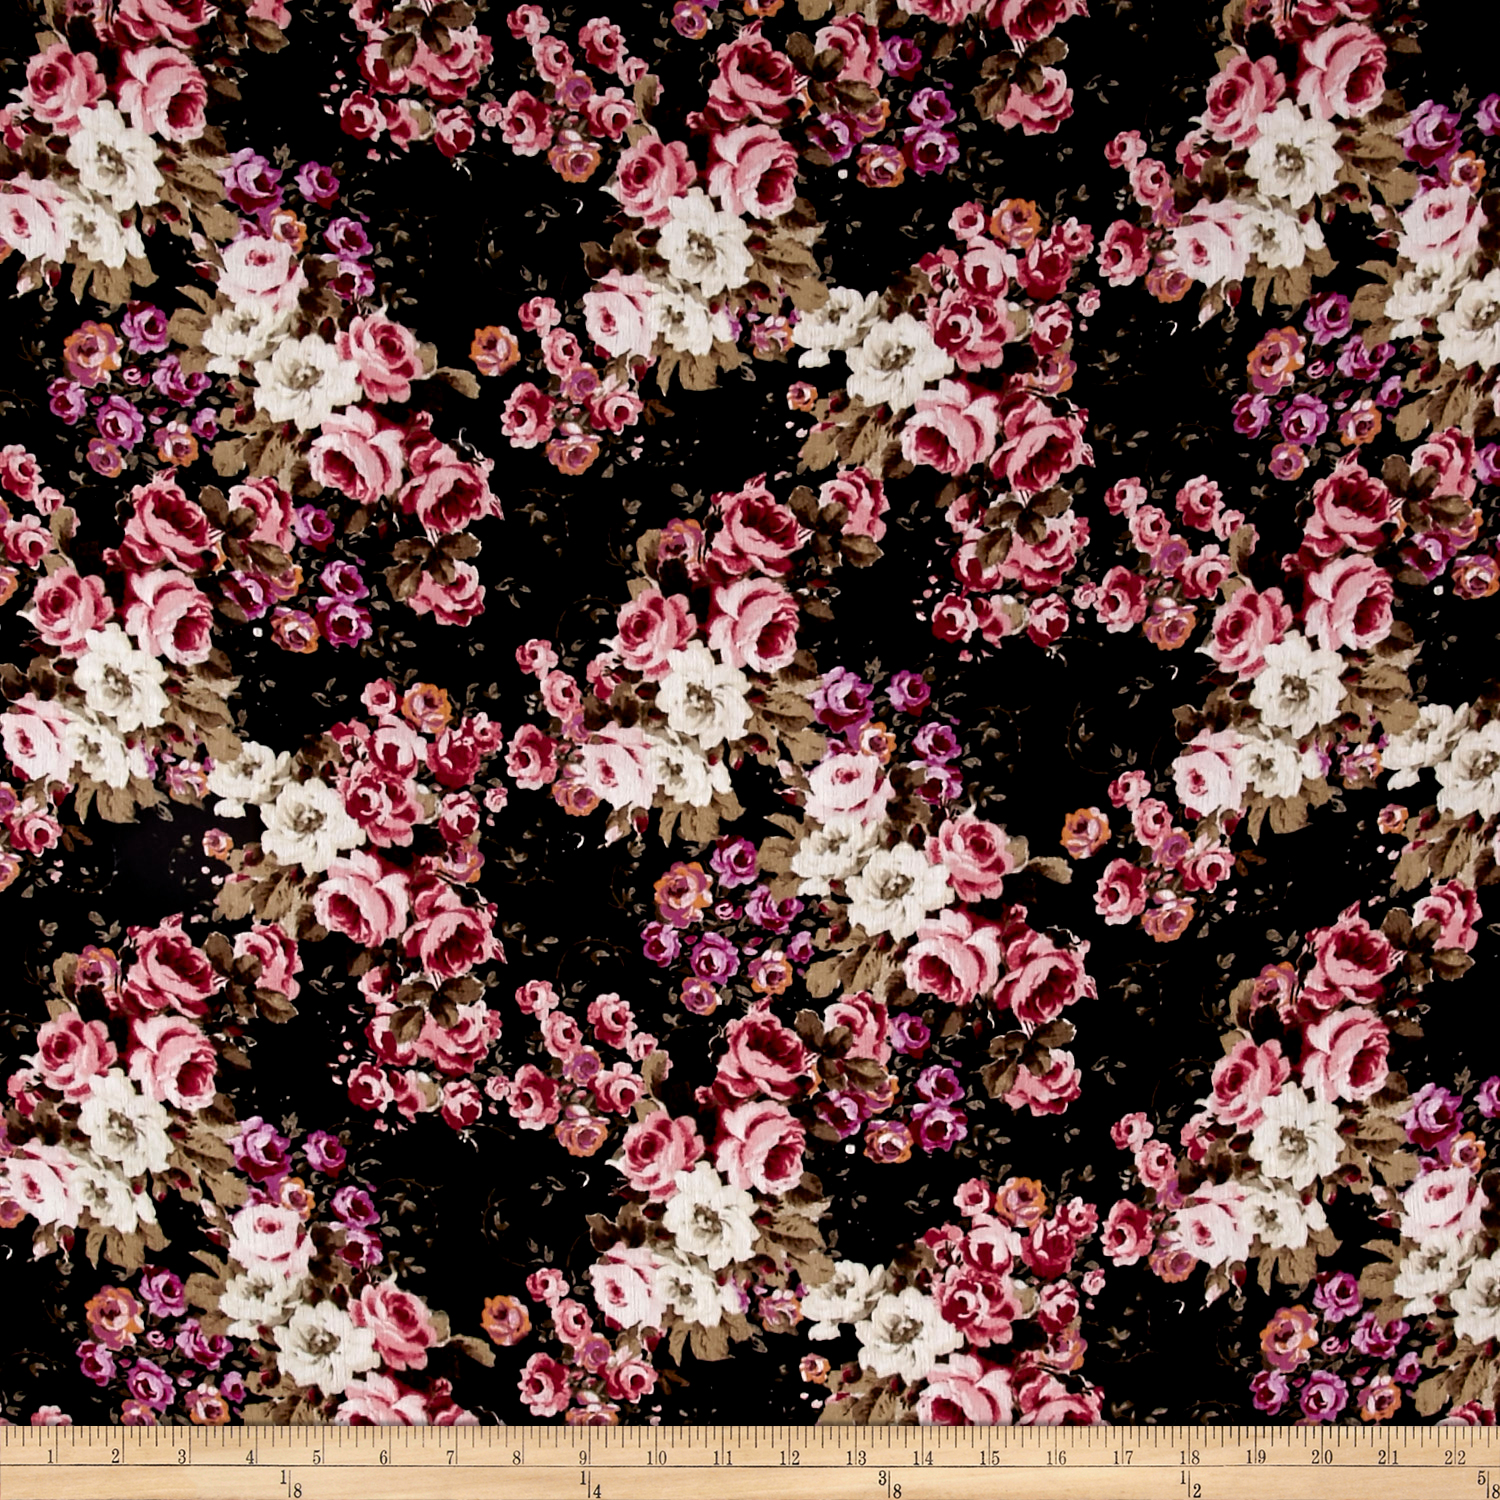 Rayon_Crepe_Floral_Bouquet_Black_Fabric